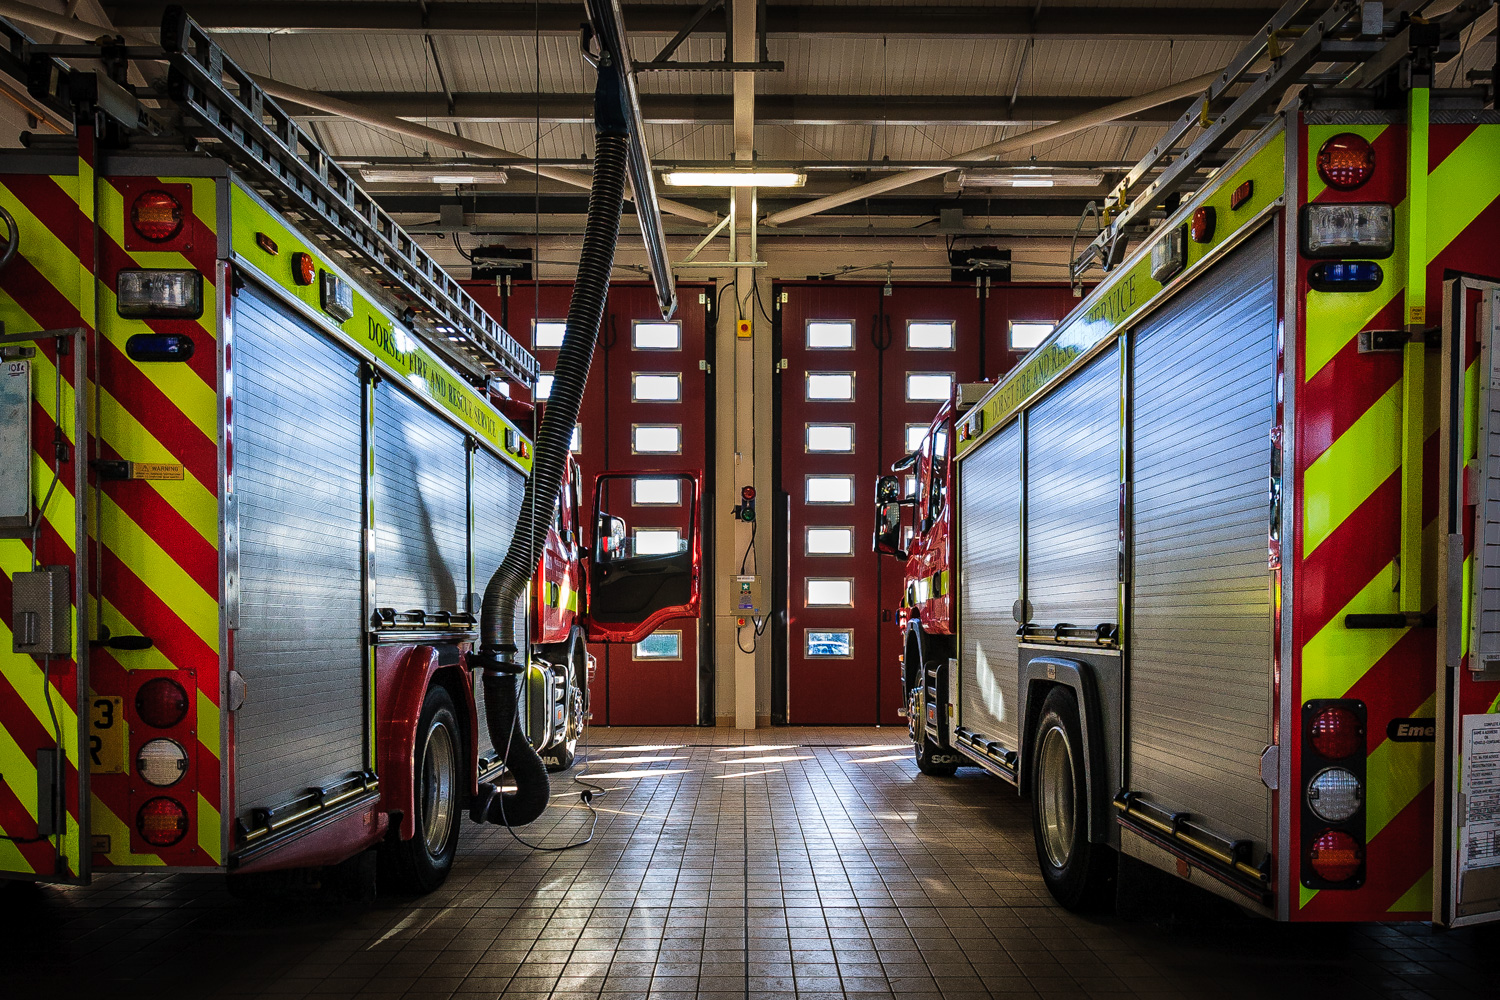 Picture of the appliance Bay at Dorchester Fire Station by Rick McEvoy interior photographer